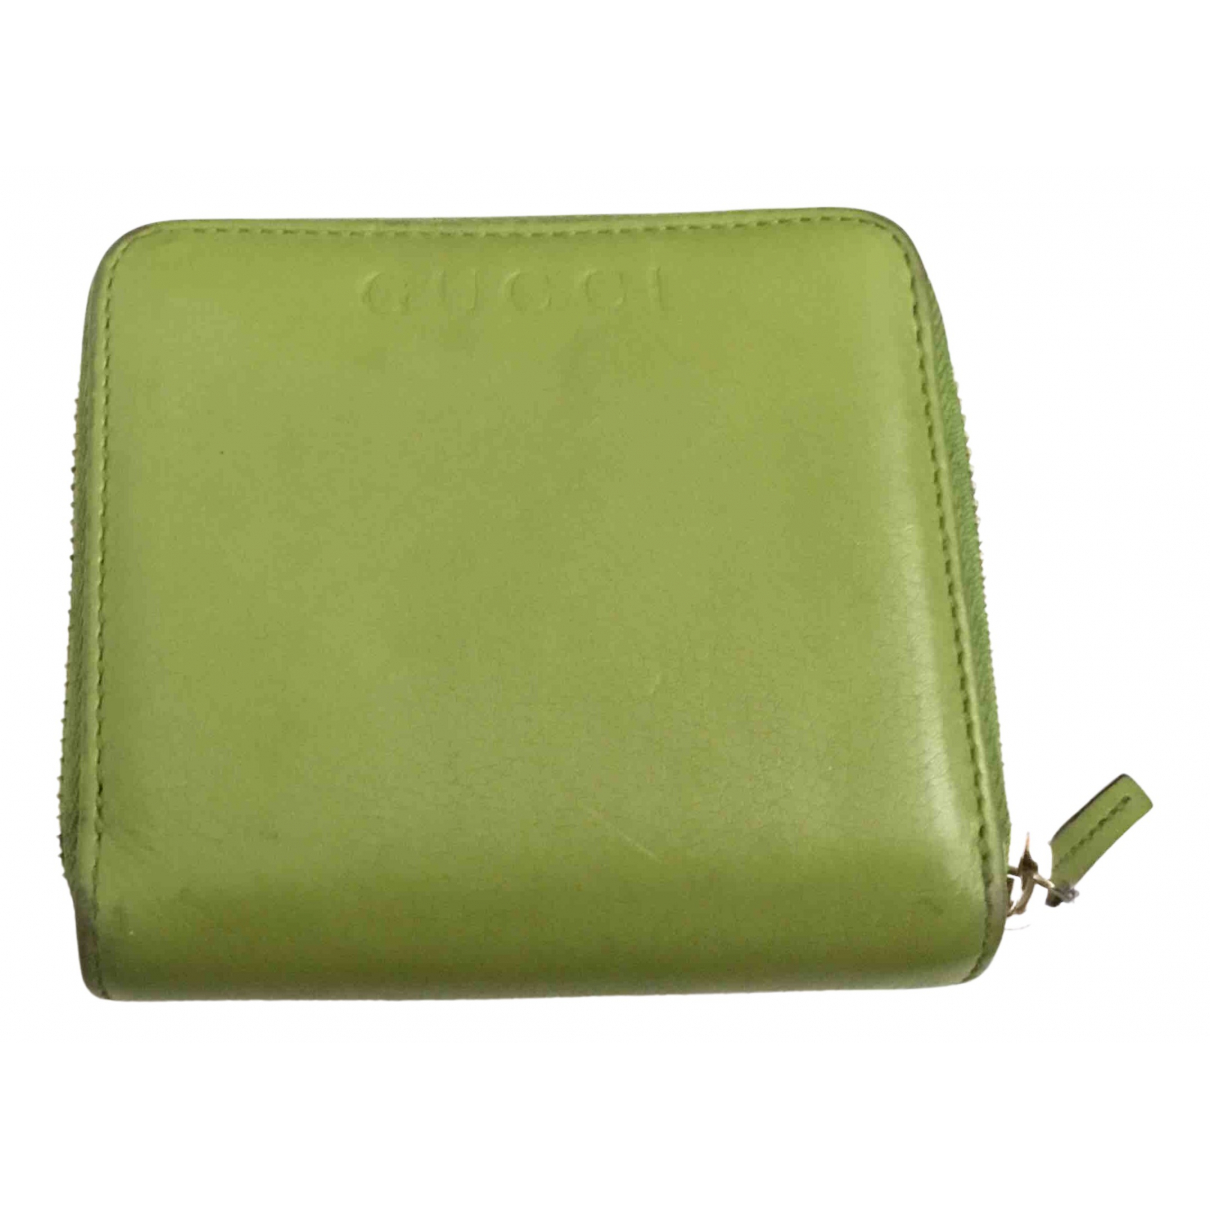 Gucci N Green Leather wallet for Women N